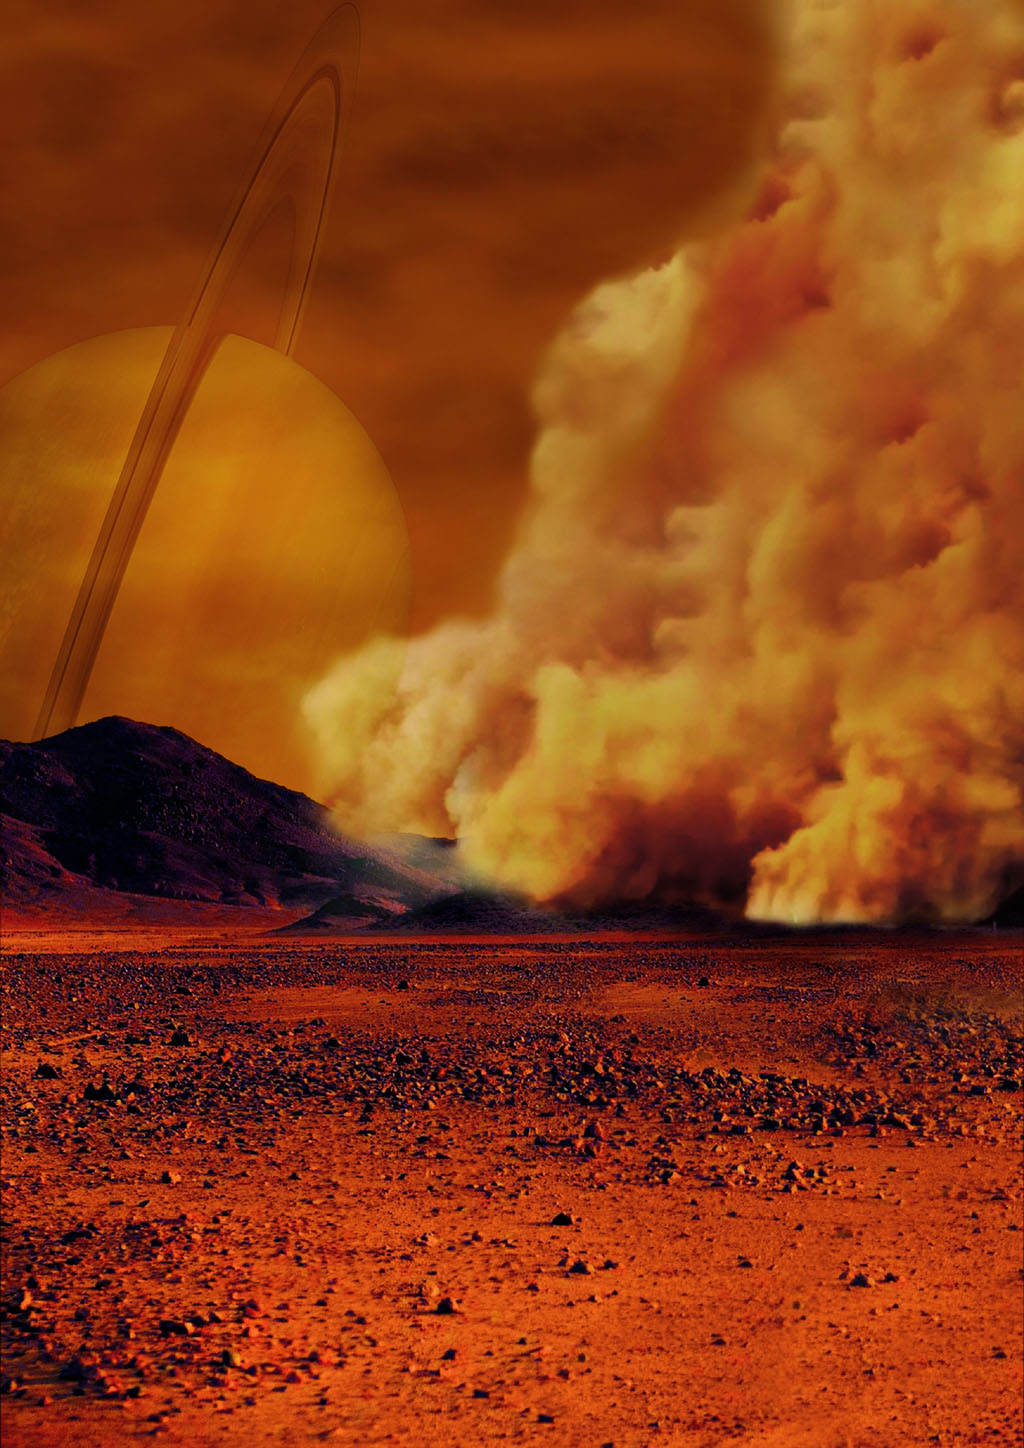 Artist's concept of a dust storm on Titan. Credit: IPGP/Labex UnivEarthS/University Paris Diderot - C. Epitalon & S. Rodriguez